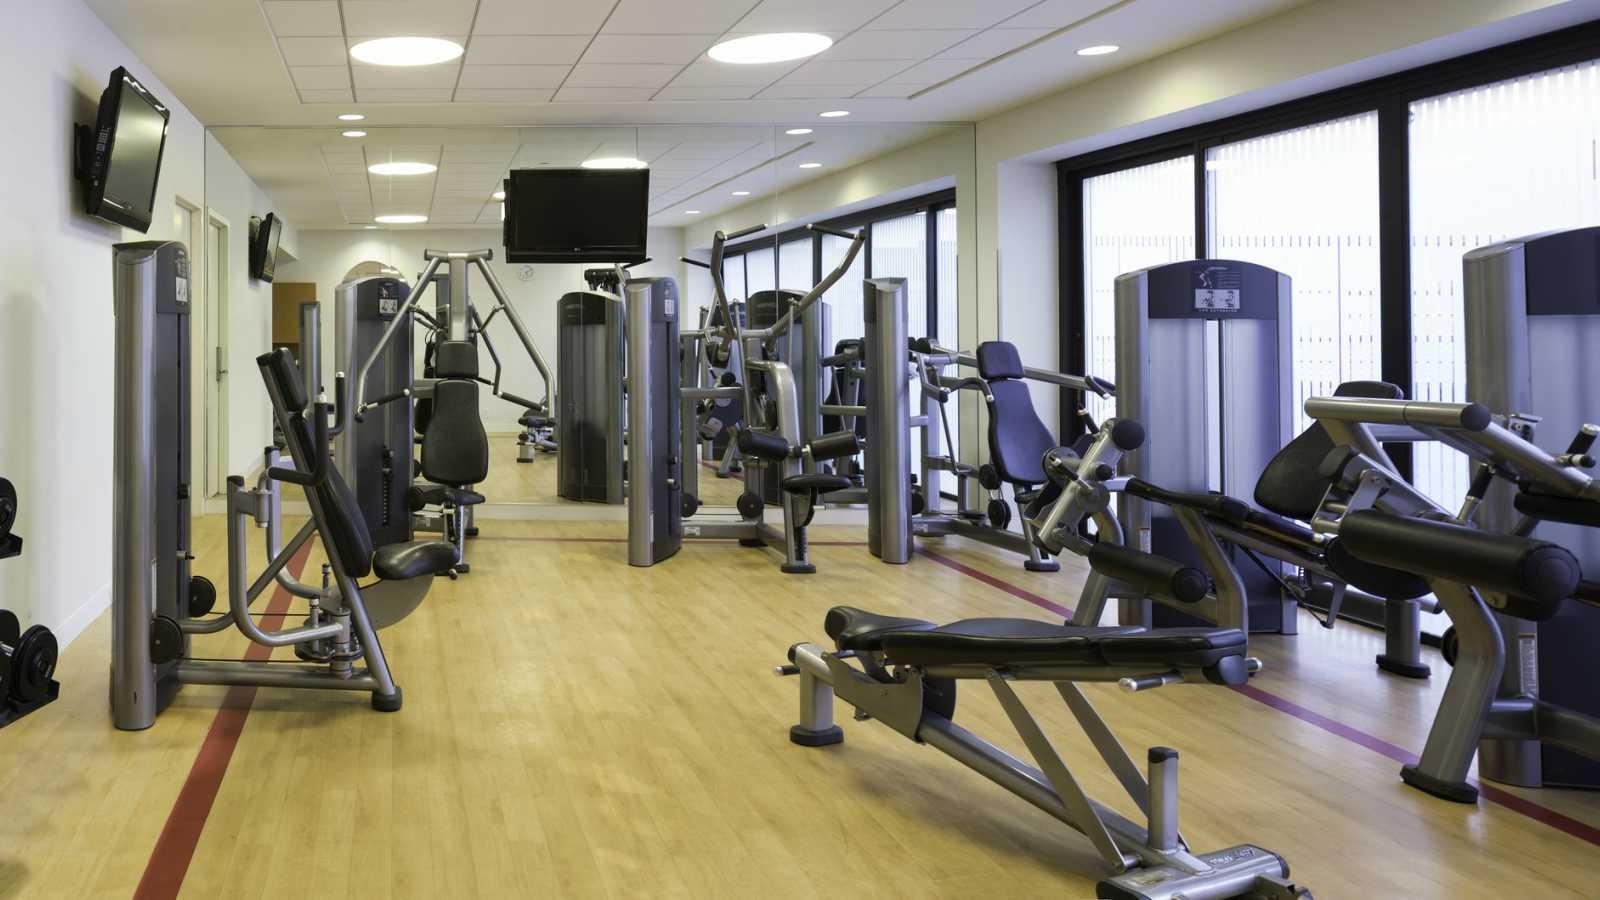 Oklahoma City Hotel - Fitness Center